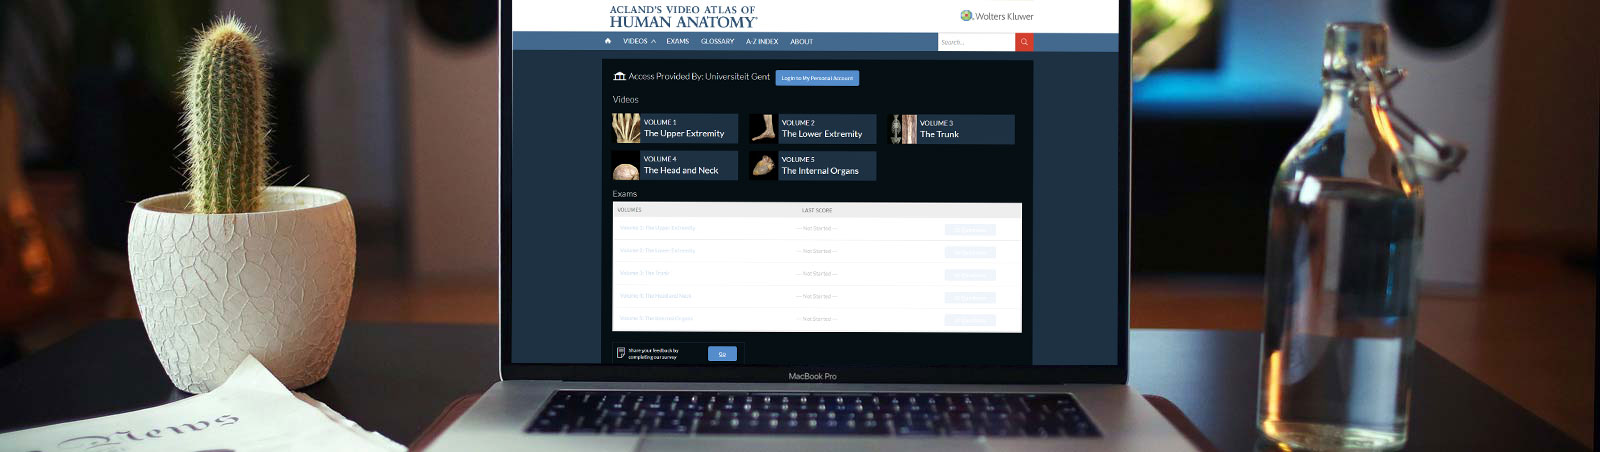 Access To Aclands Video Atlas Of Human Anatomy Kcgg